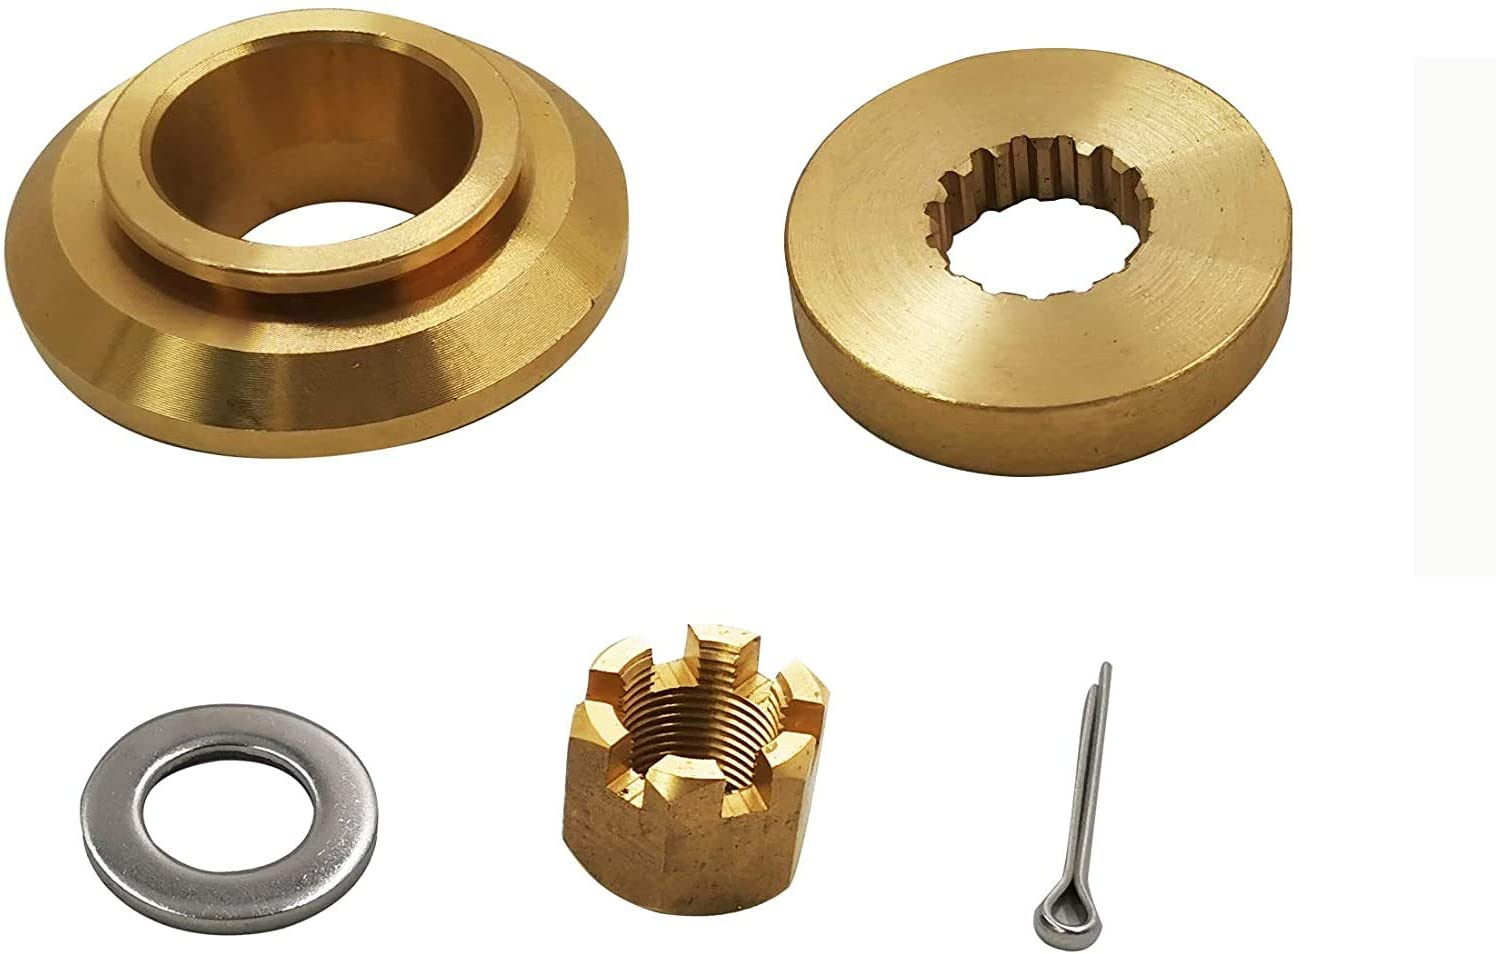 Jason Marine Propeller Installation Hardware Kits fit Yamaha Outboard150-300HP, Thrust Washer/Spacer/Washer/Nut/Cotter Pin, Ref No.6E5-45987-01